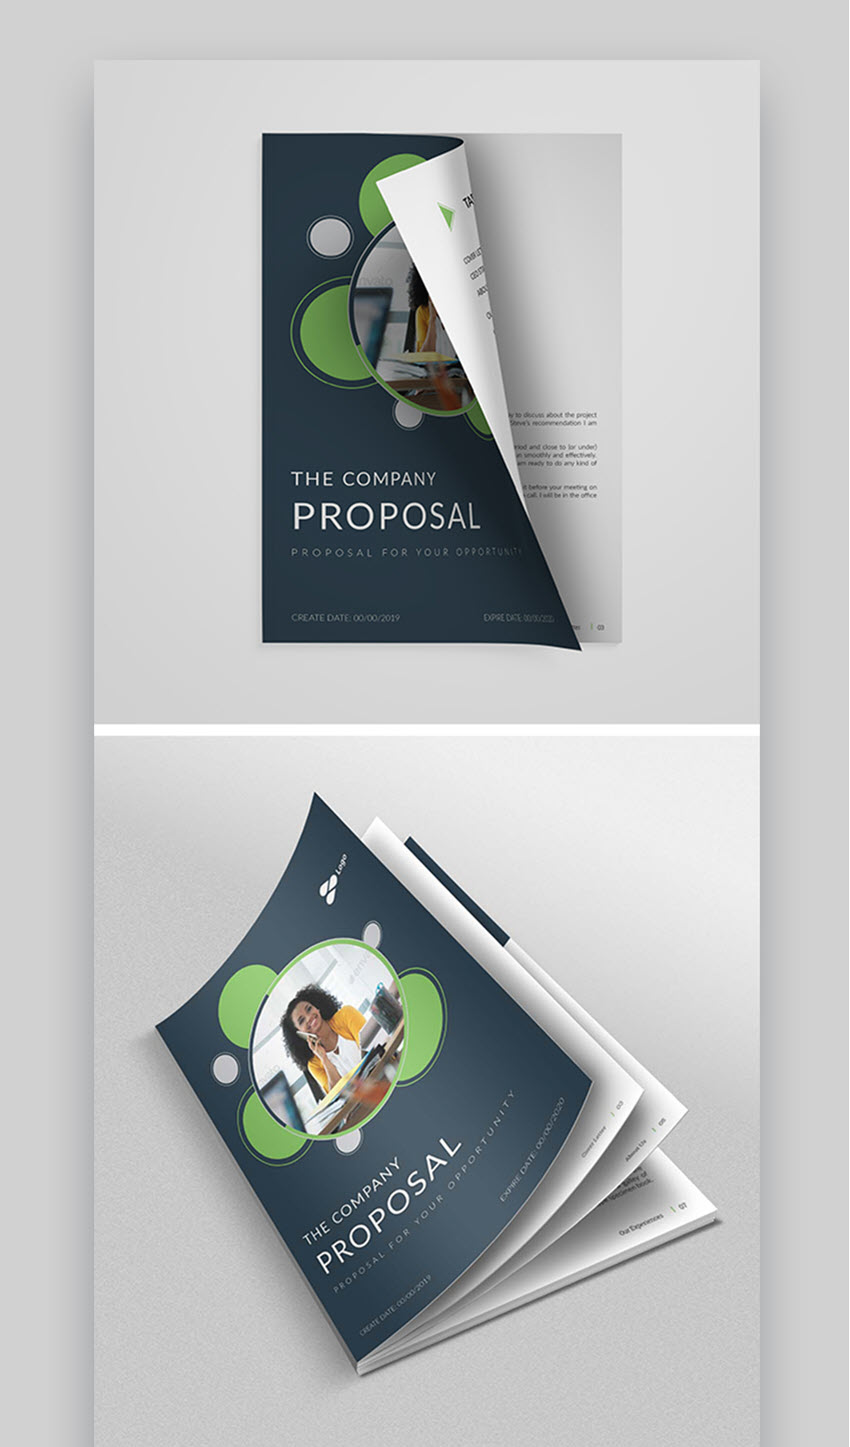 25 Professional Business Project Proposal Templates for 2019